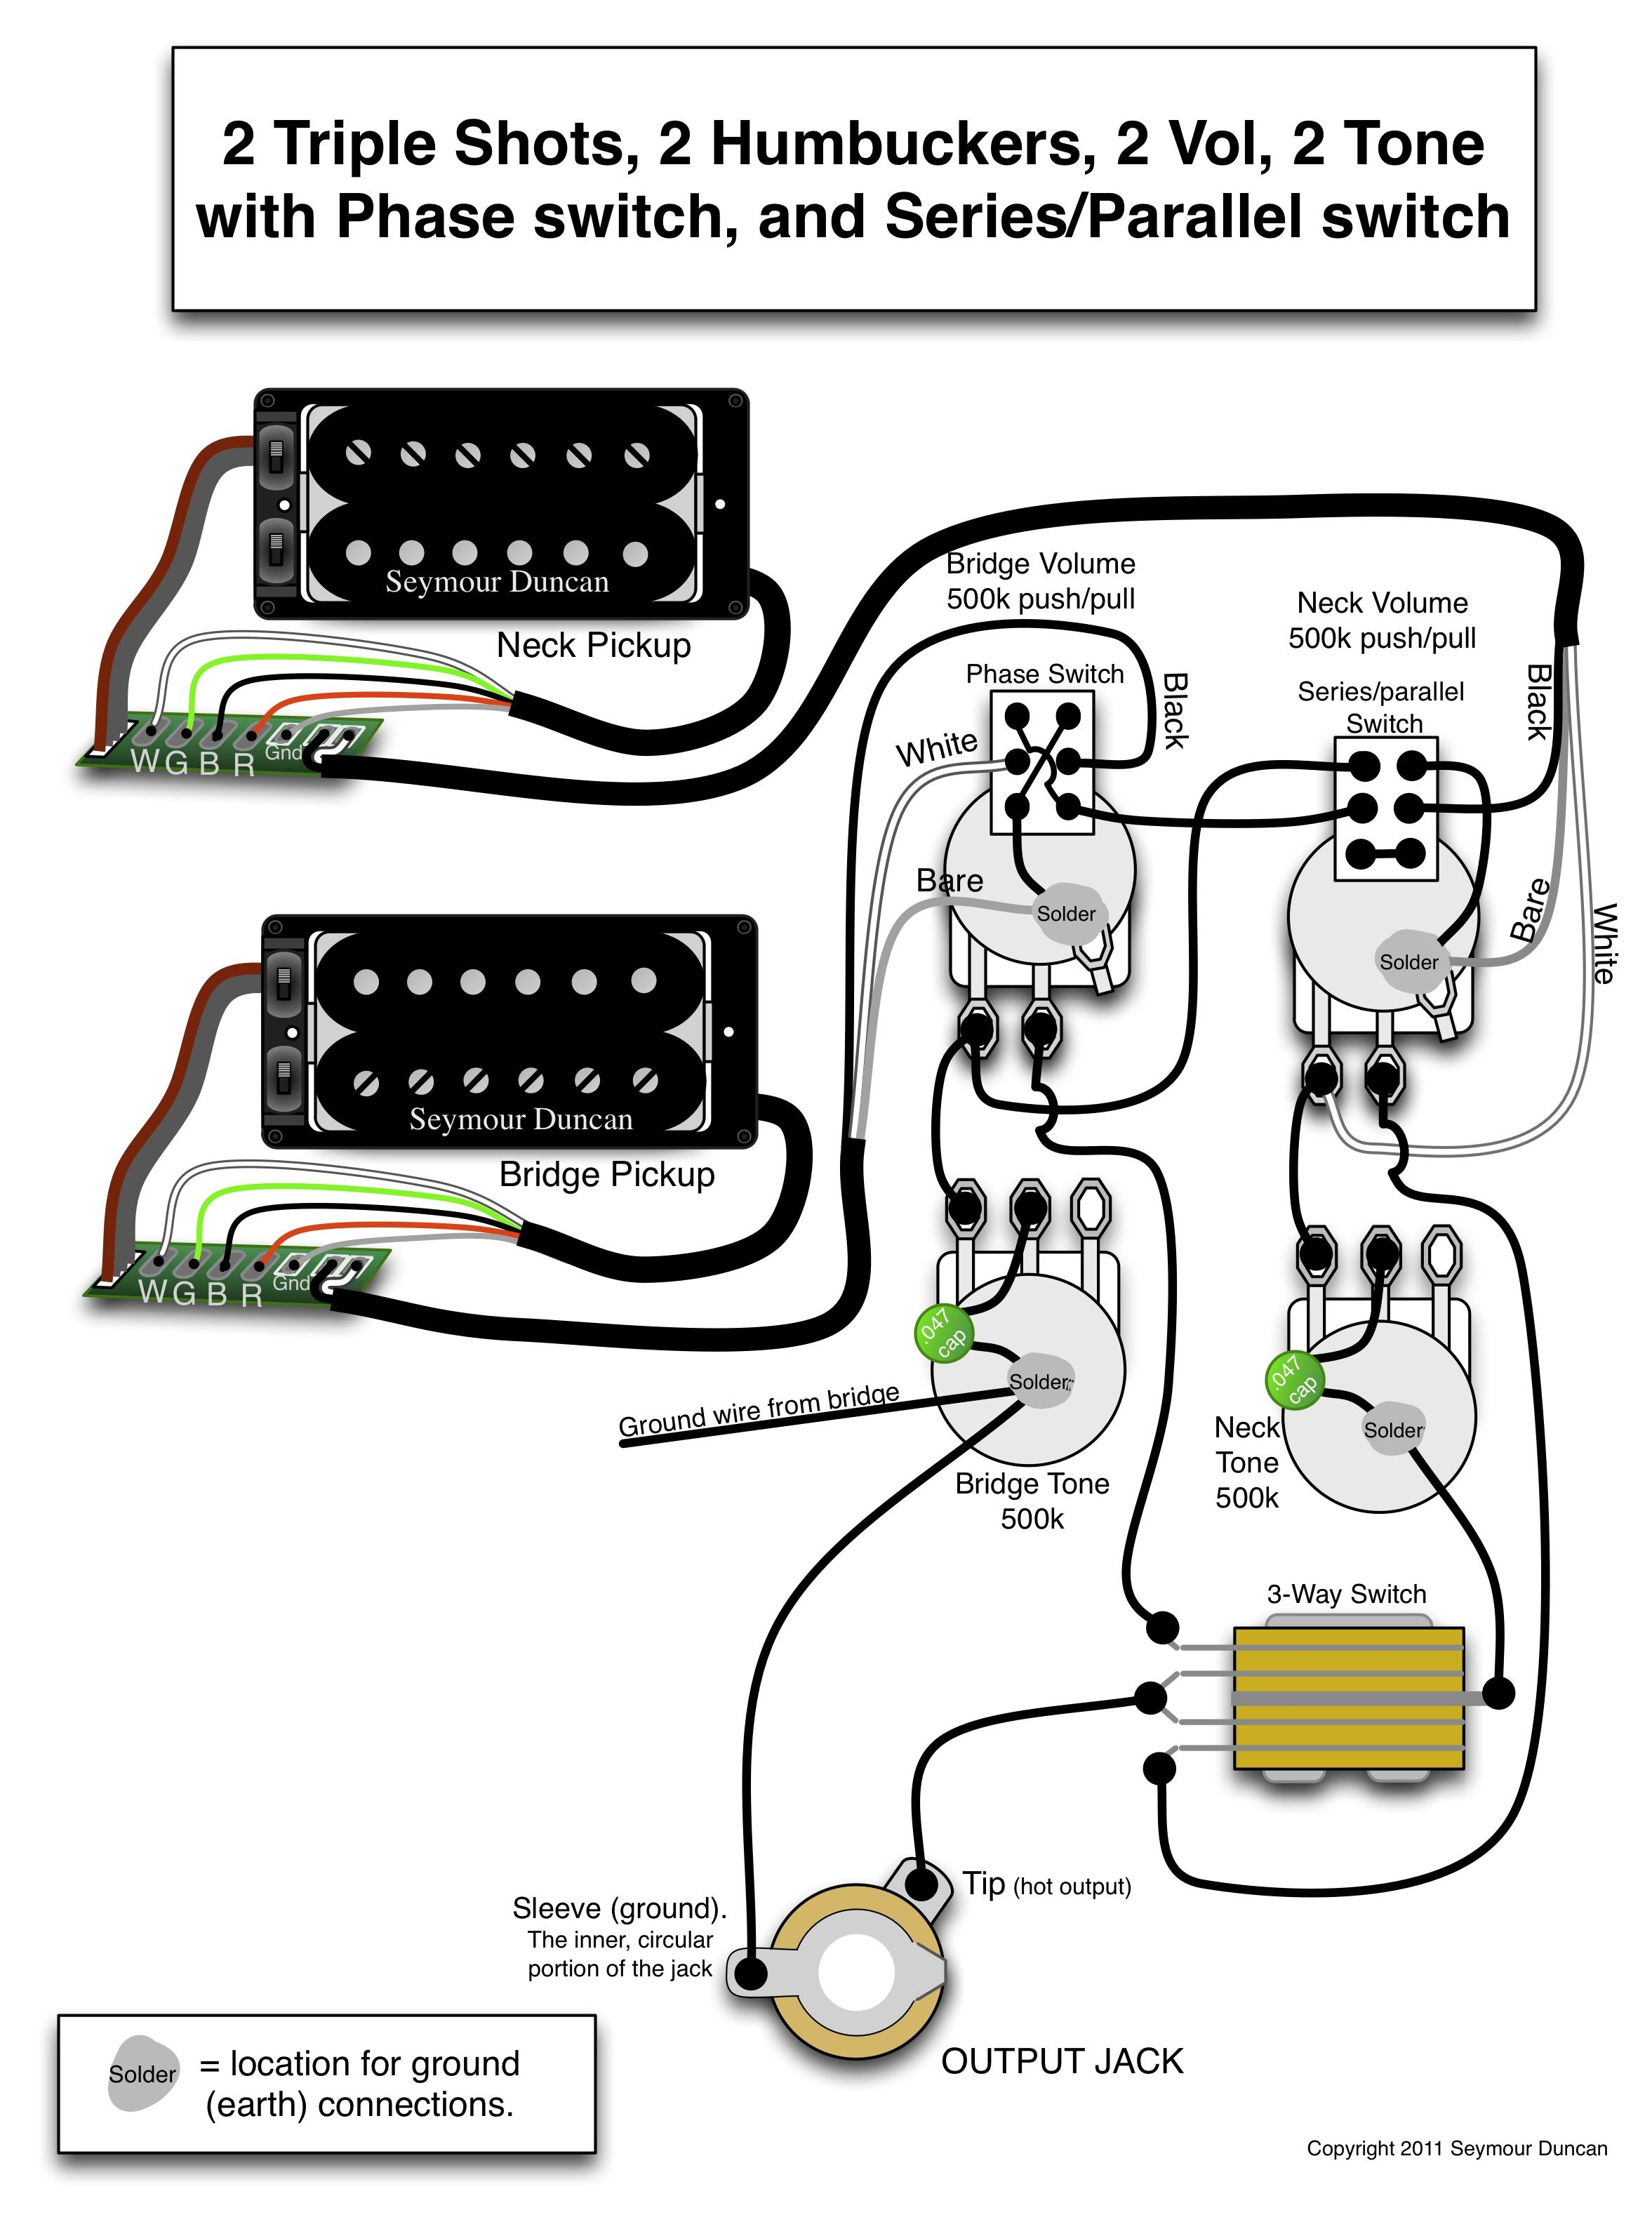 Free Paralel Humbucker Wiring Diagram Auto Electrical Iso Symbols Related With